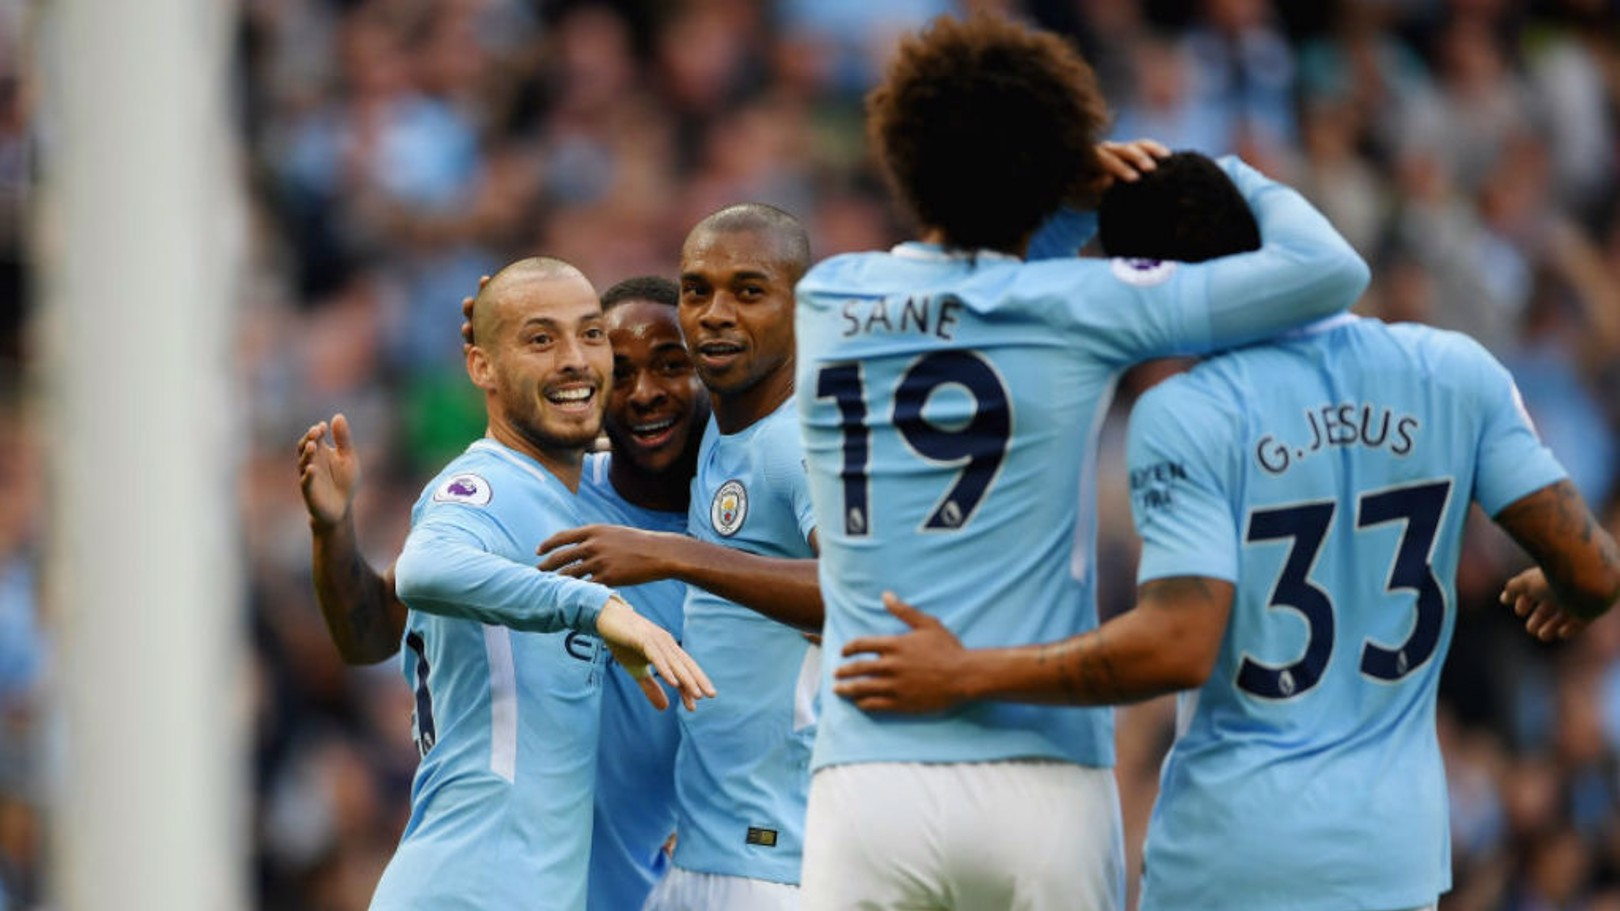 SEVENTH HEAVEN: City produced a spectacular performance in the 7-2 win over Stoke